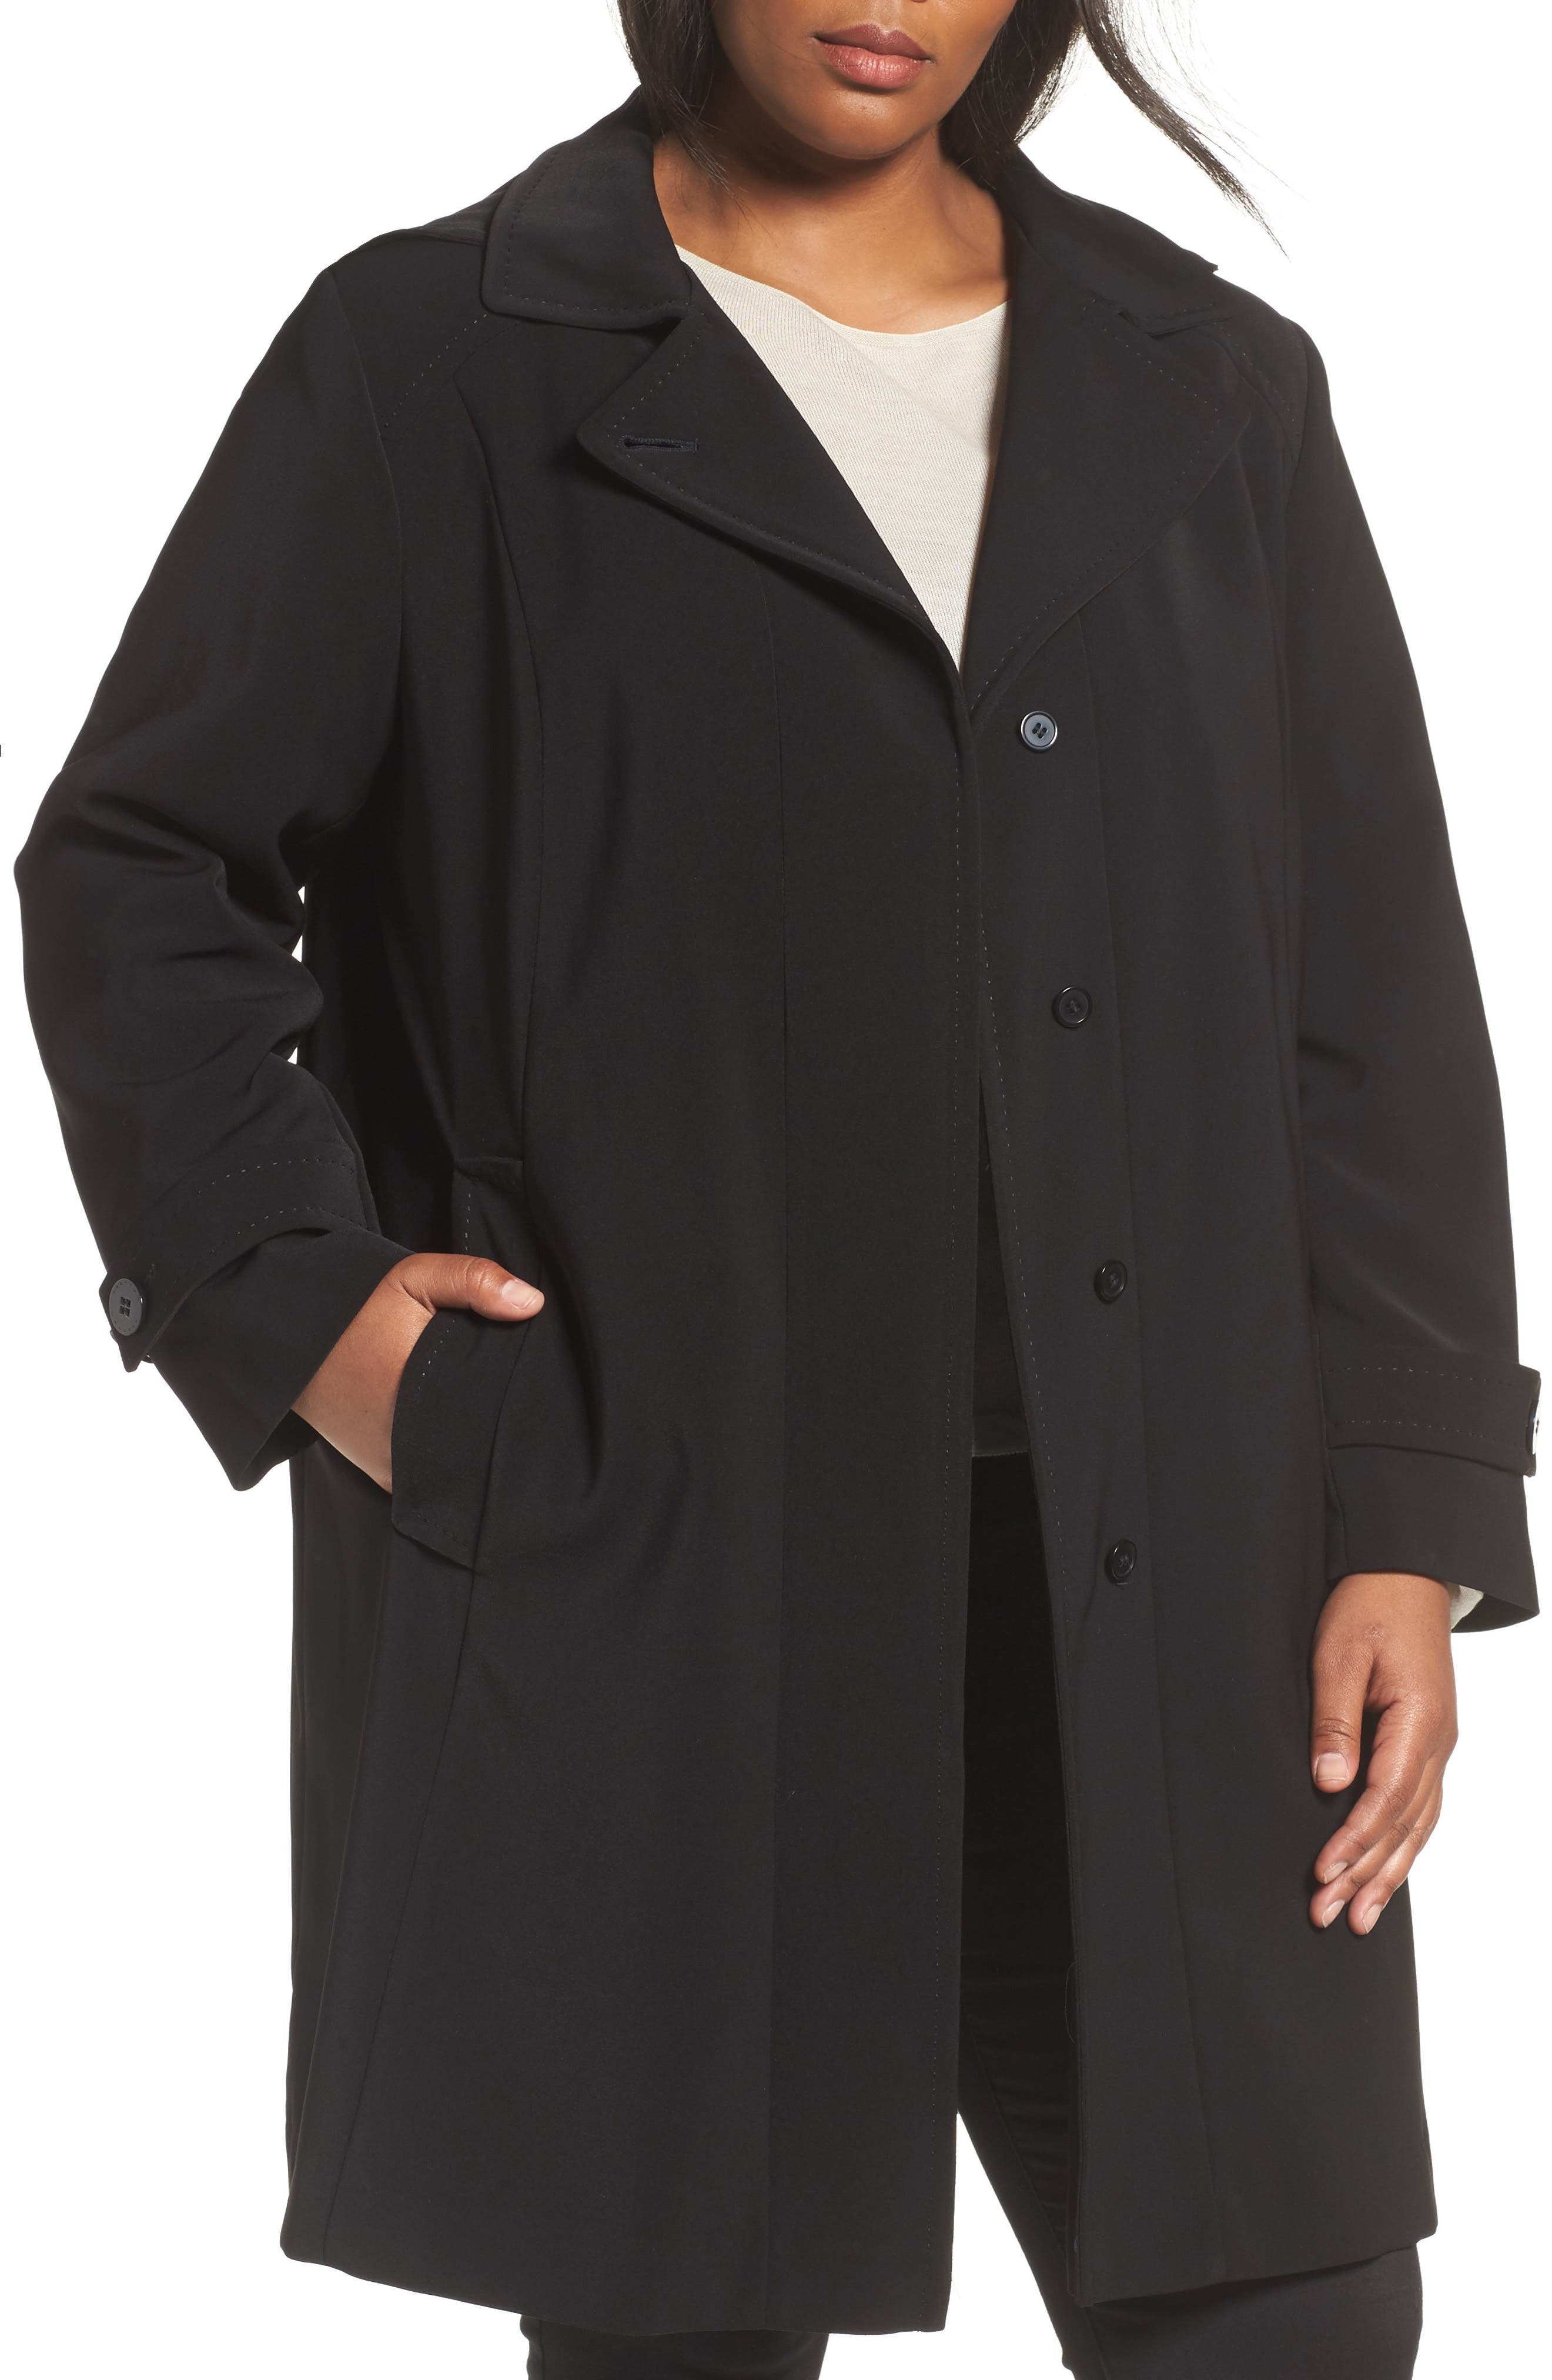 Main Image - Gallery A-Line Raincoat with Detachable Hood & Liner (Plus Size)